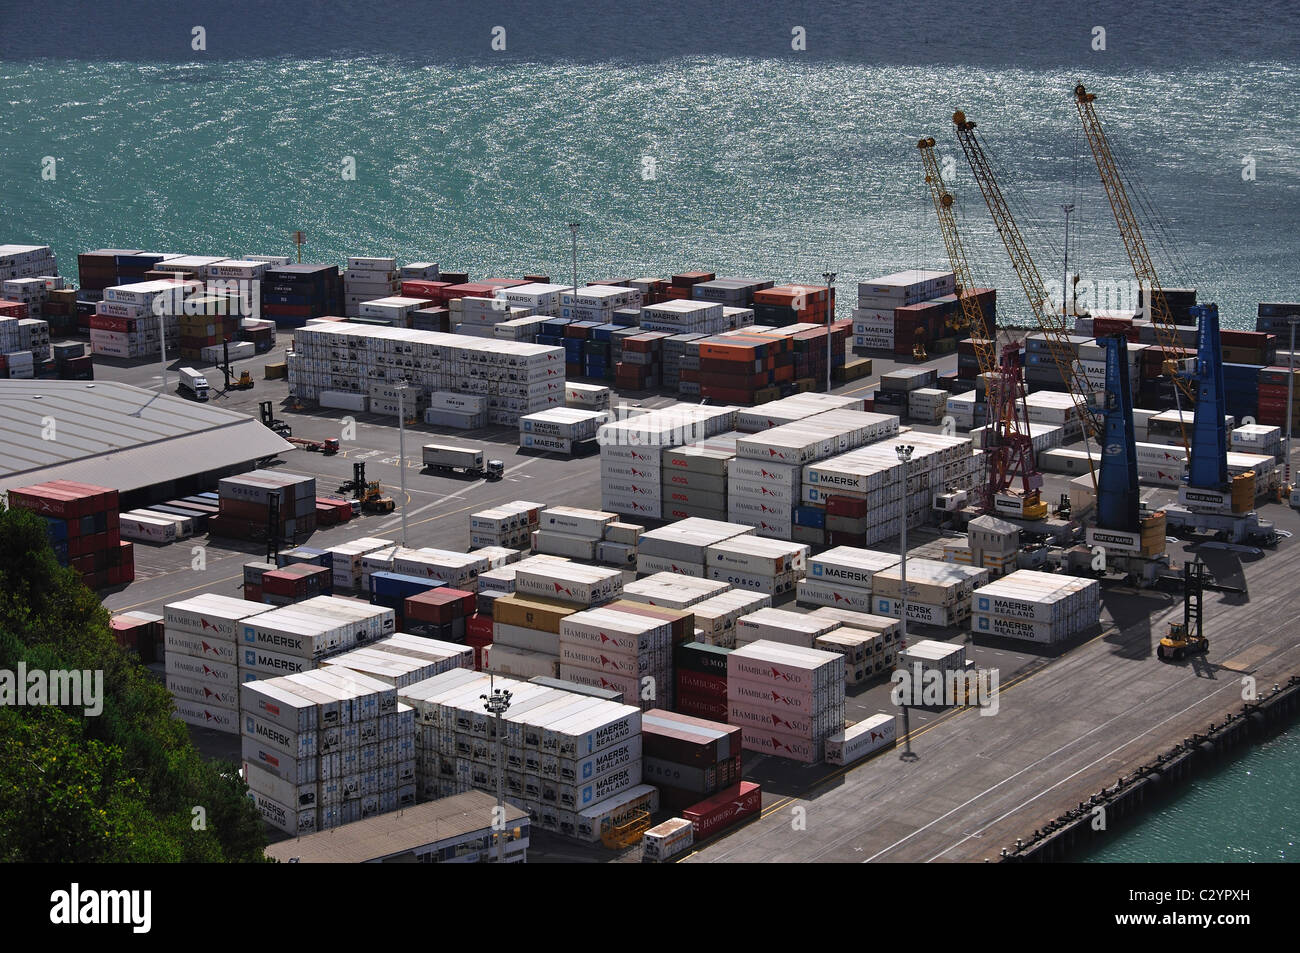 Stacked containers in Napier Harbour, Napier, Hawke's Bay, North Island, New Zealand - Stock Image